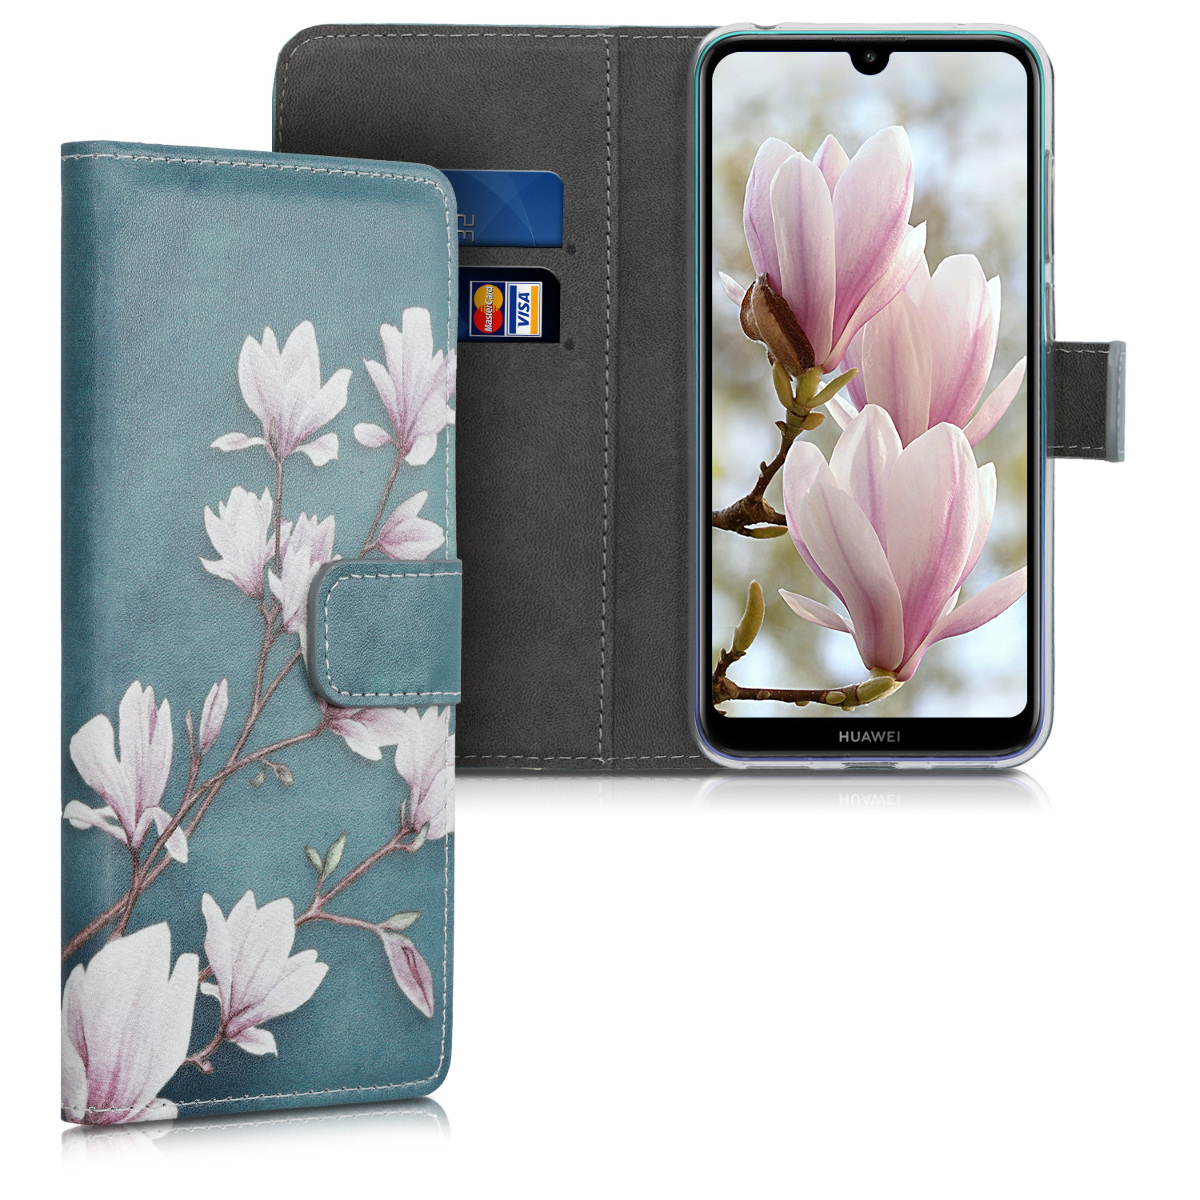 KW Θήκη Σιλικόνης Huawei Y7 2019 / Y7 Prime 2019 - PU Leather Protective Flip Cover - Taupe / White / Blue Grey (47664.03)